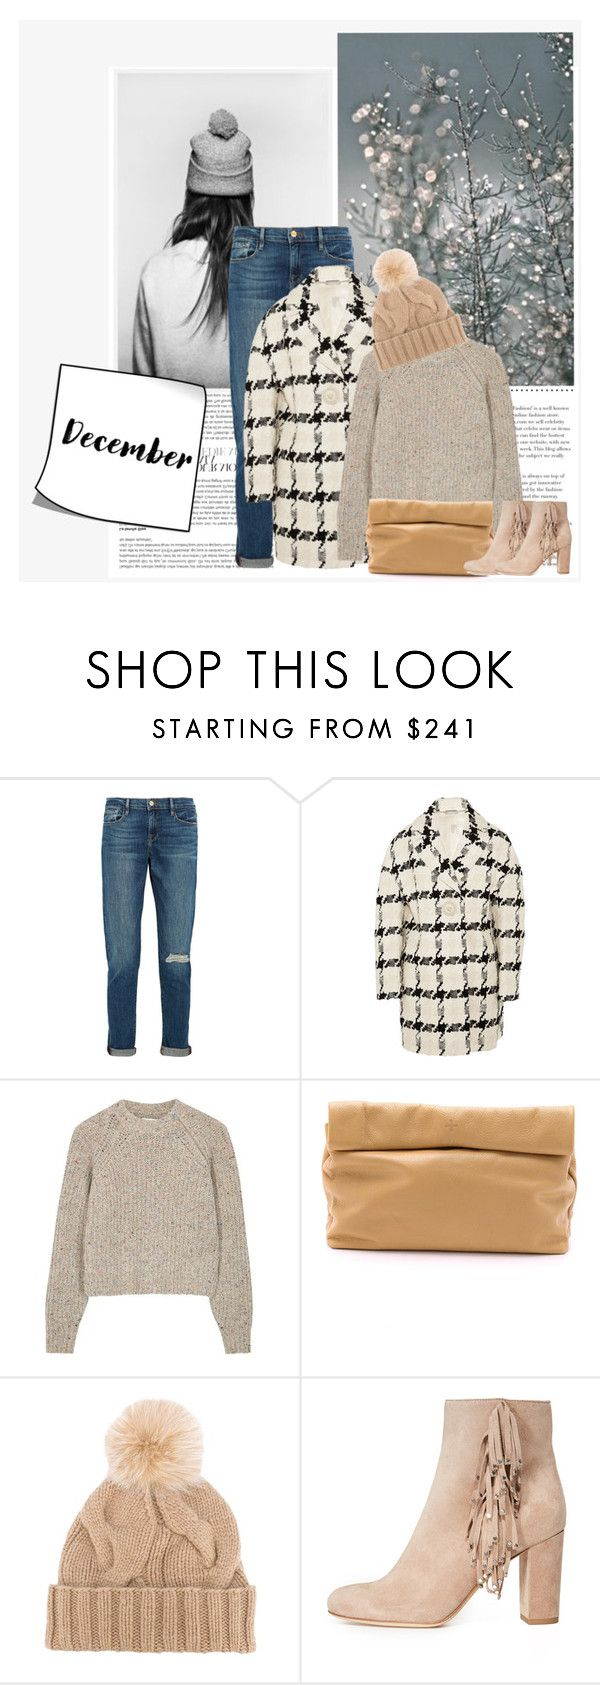 """""""Sin título #2582"""" by liliblue ❤ liked on Polyvore featuring Frame, Alexander McQueen, Étoile Isabel Marant, Marie Turnor, Loro Piana and Diane Von Furstenberg"""